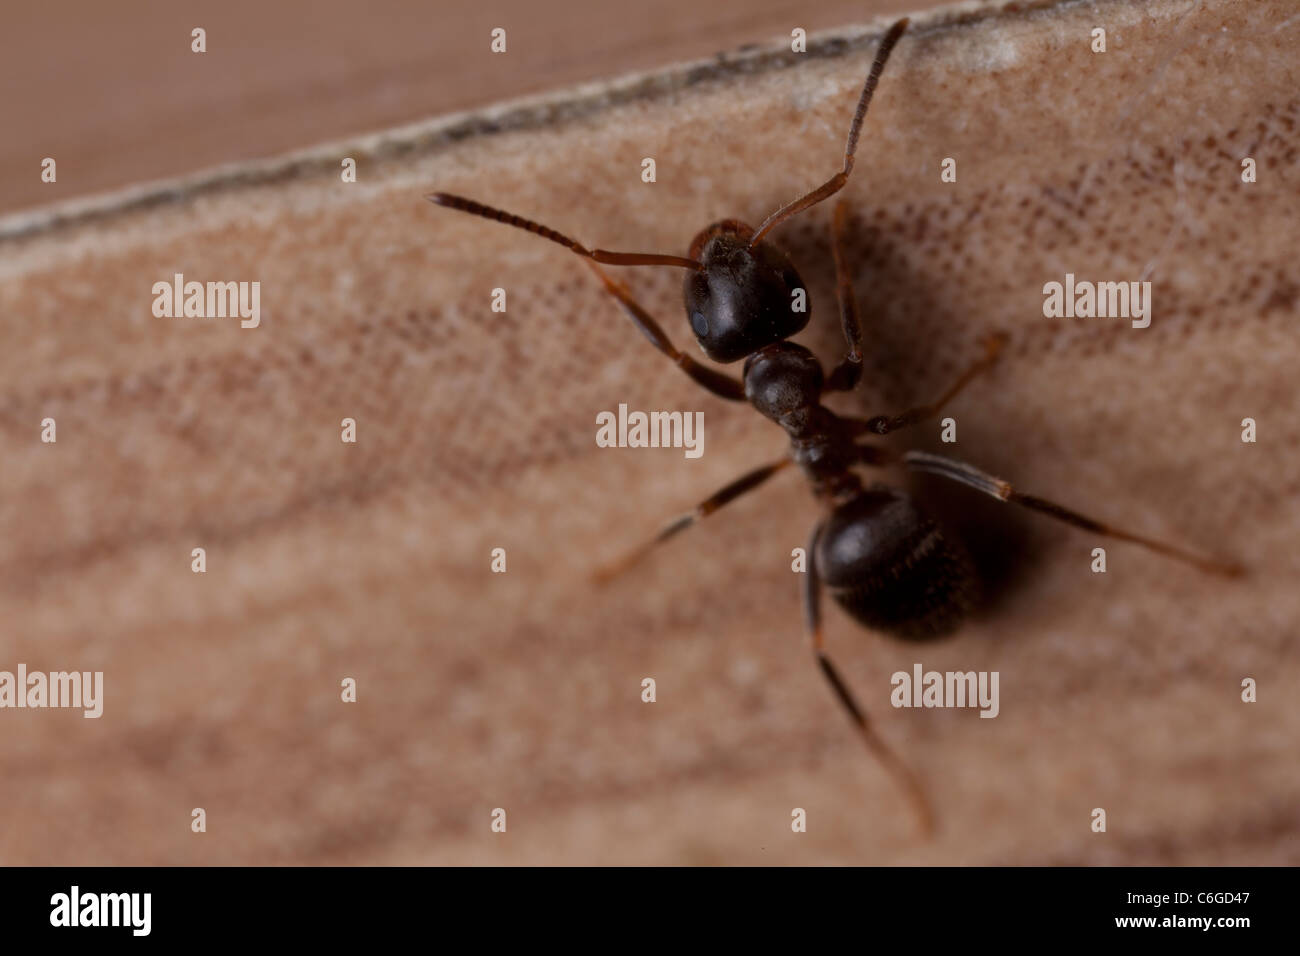 a macro photo of wood ants invaded human kitchen, on cupboard ...